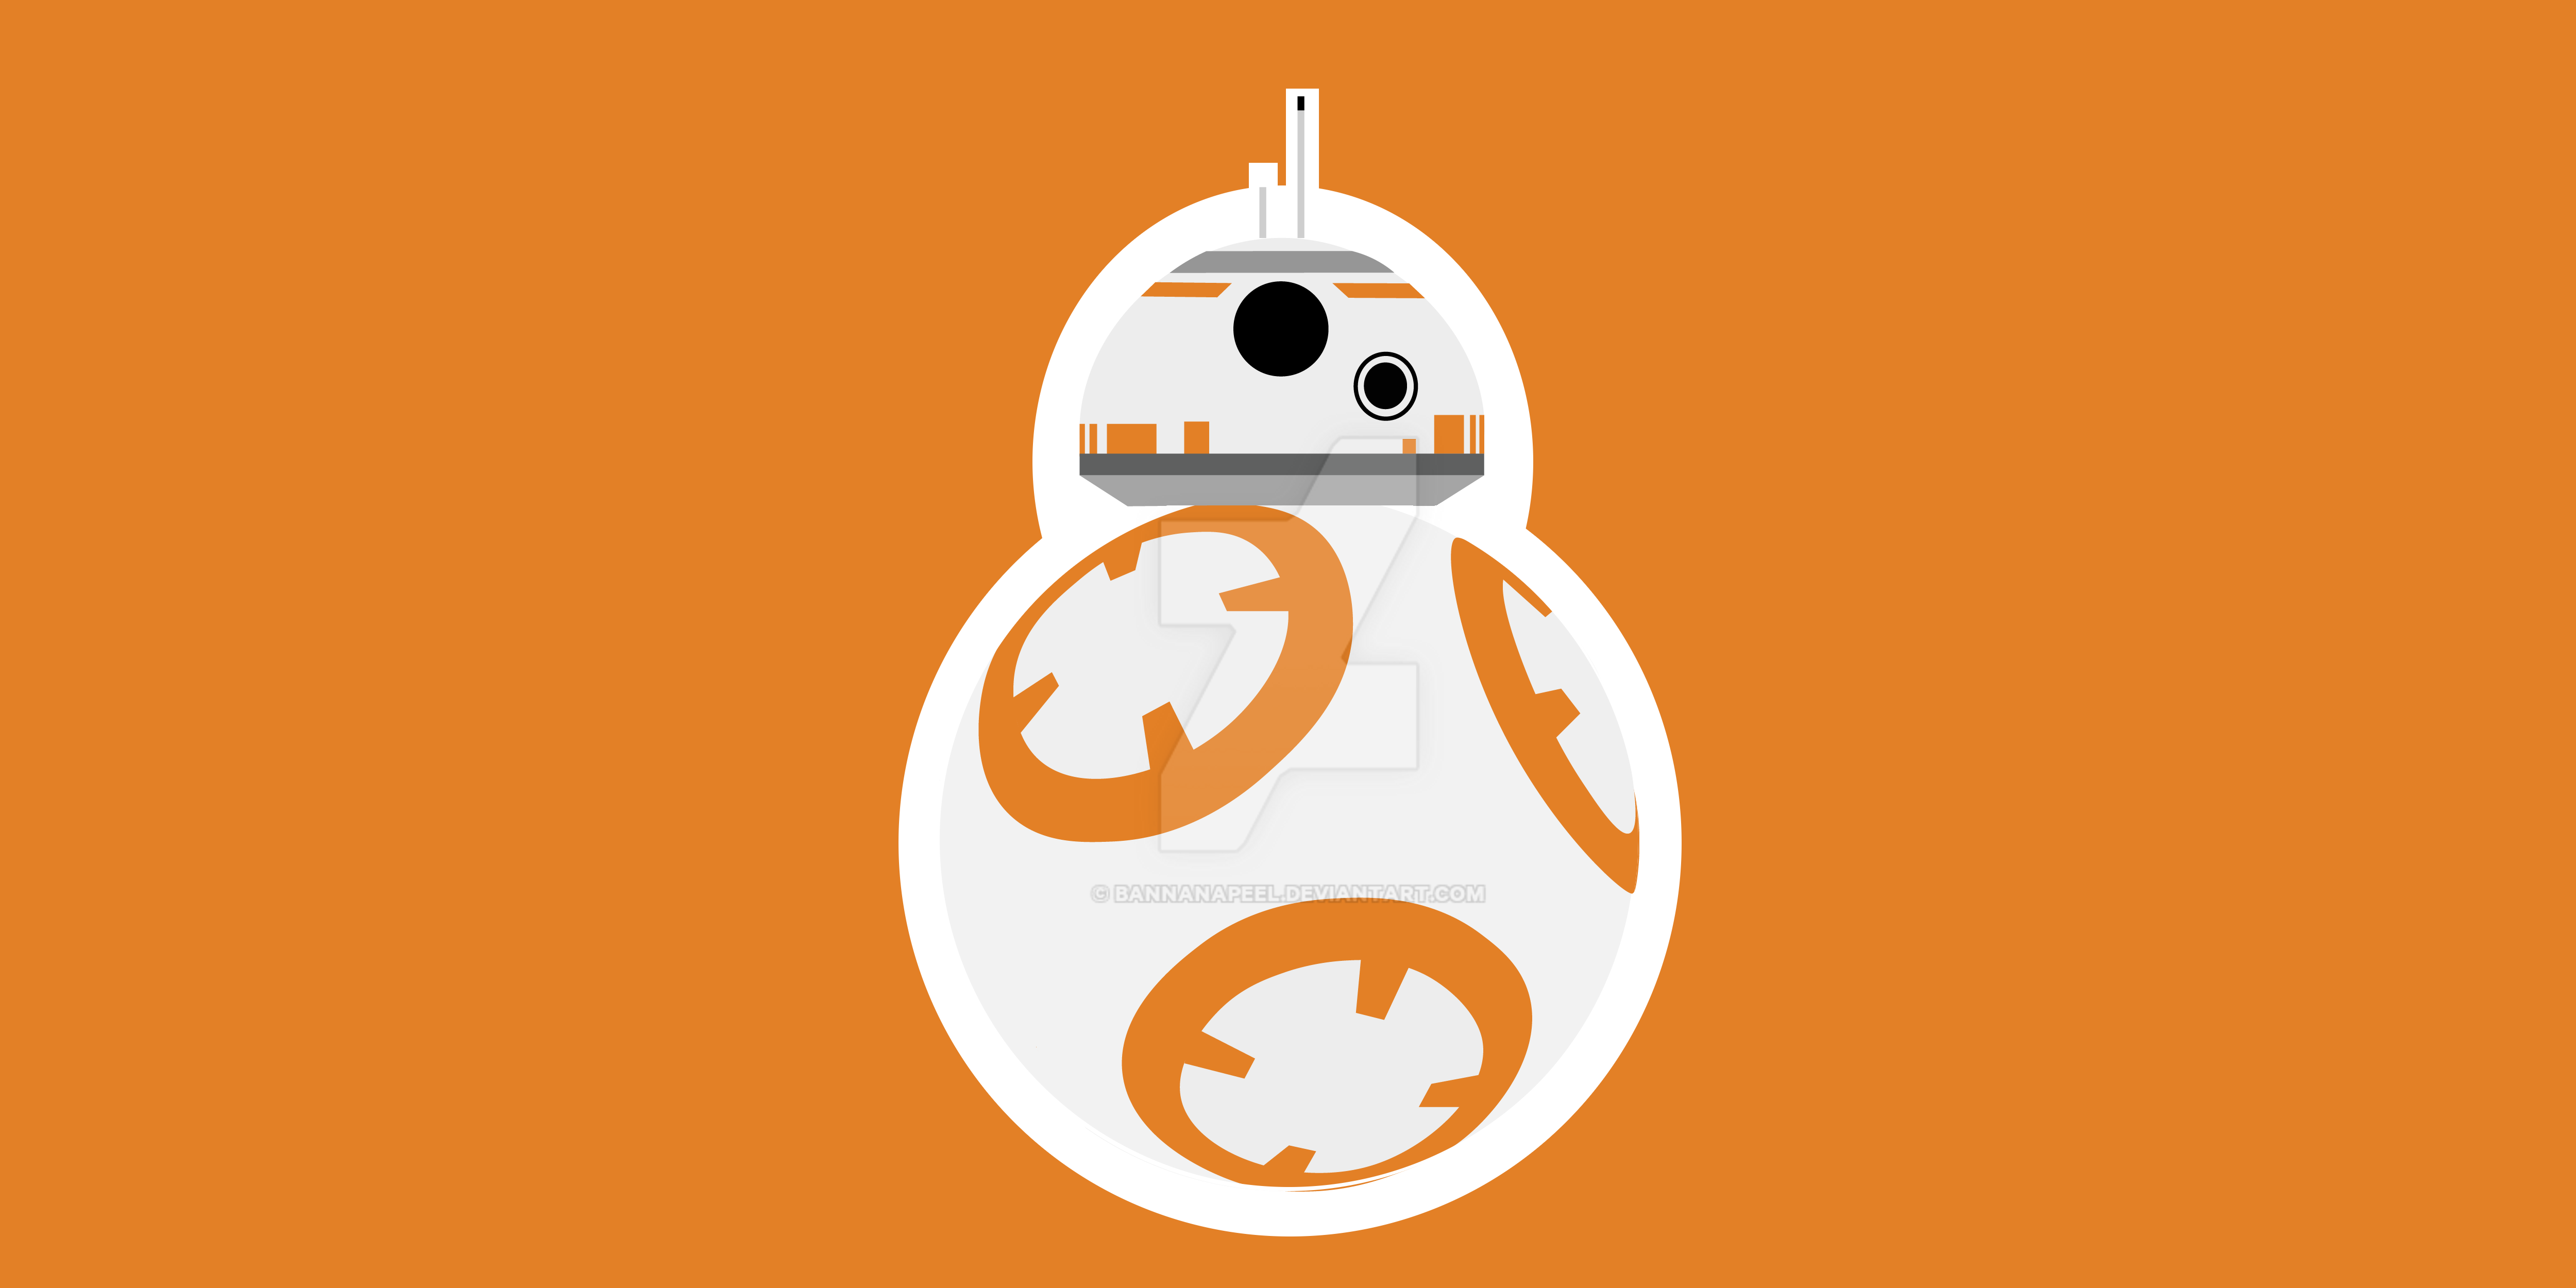 Star Wars BB 8 Wallpaper 579304516 on easy drawings of guys